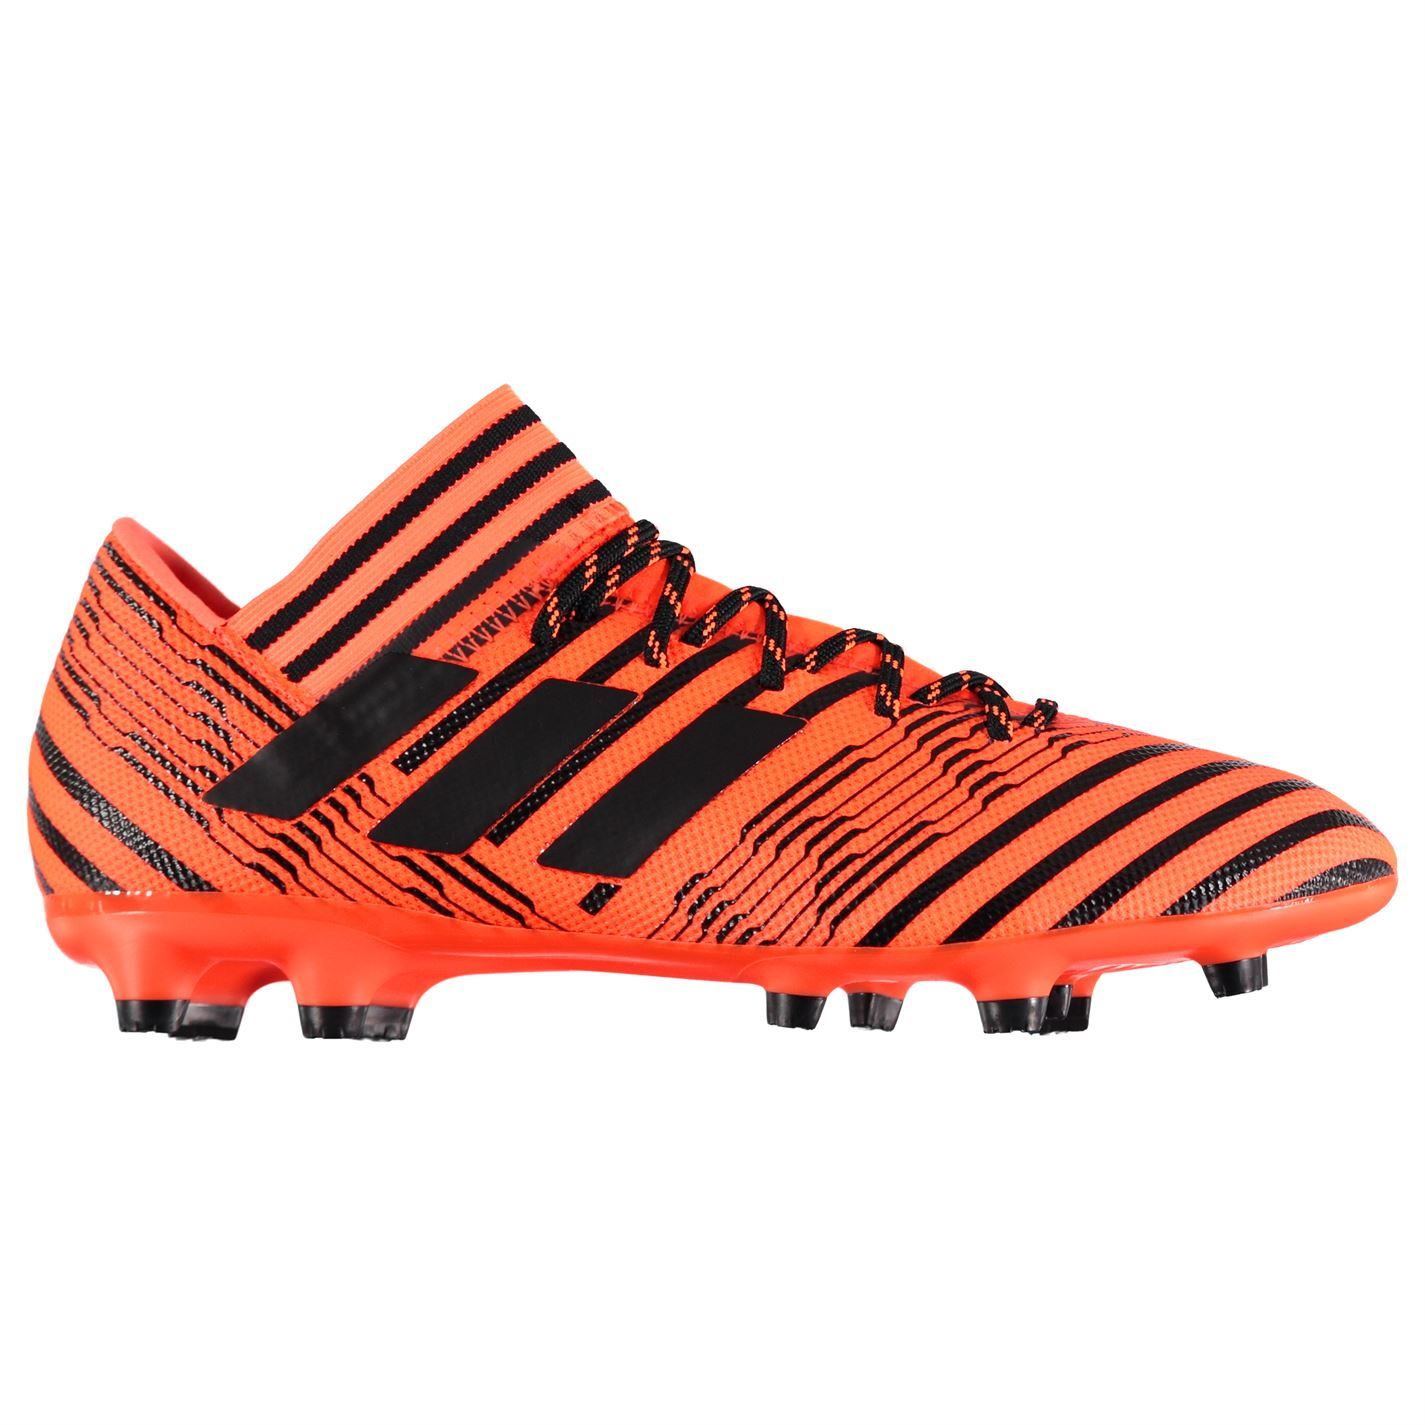 faca9c8b5c04 ... adidas Nemeziz 17.3 Firm Ground Football Boots Mens Orange Black Soccer  Cleats ...